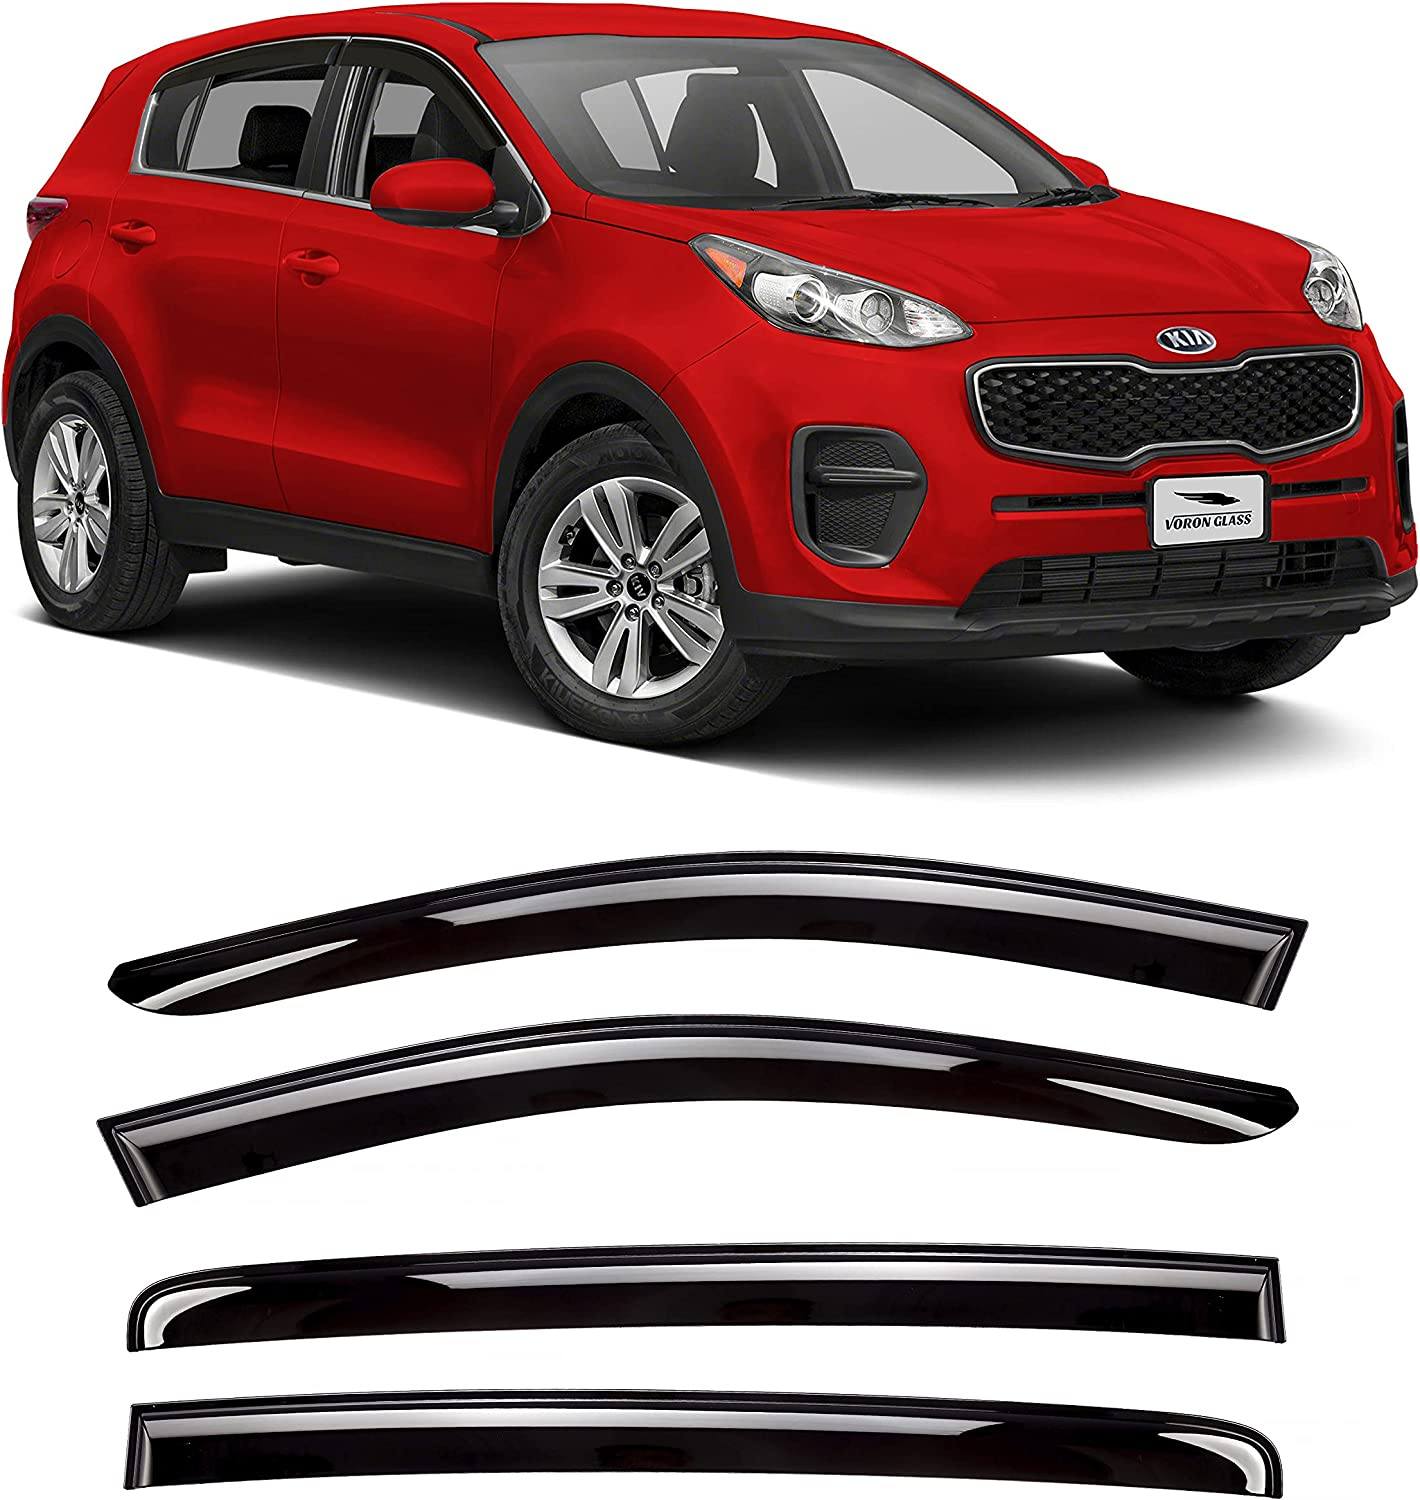 Voron Glass Tape-on Extra Durable Rain Sportage Cash special Don't miss the campaign price 2 Guards Kia for